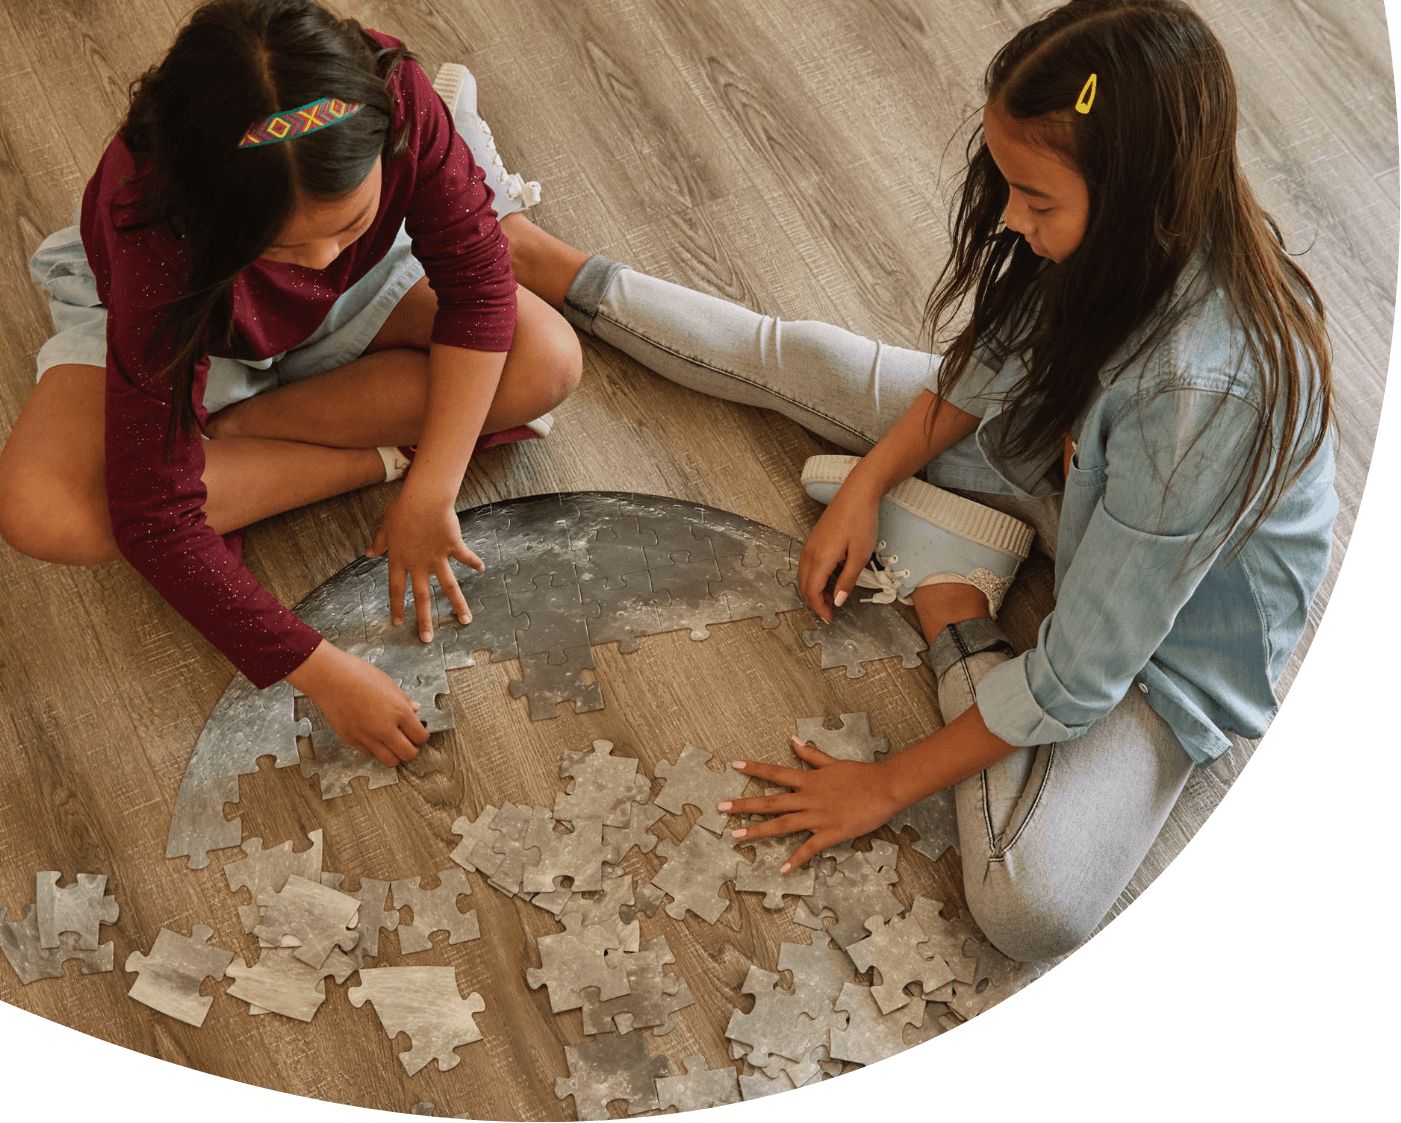 Sisters assembling a puzzle